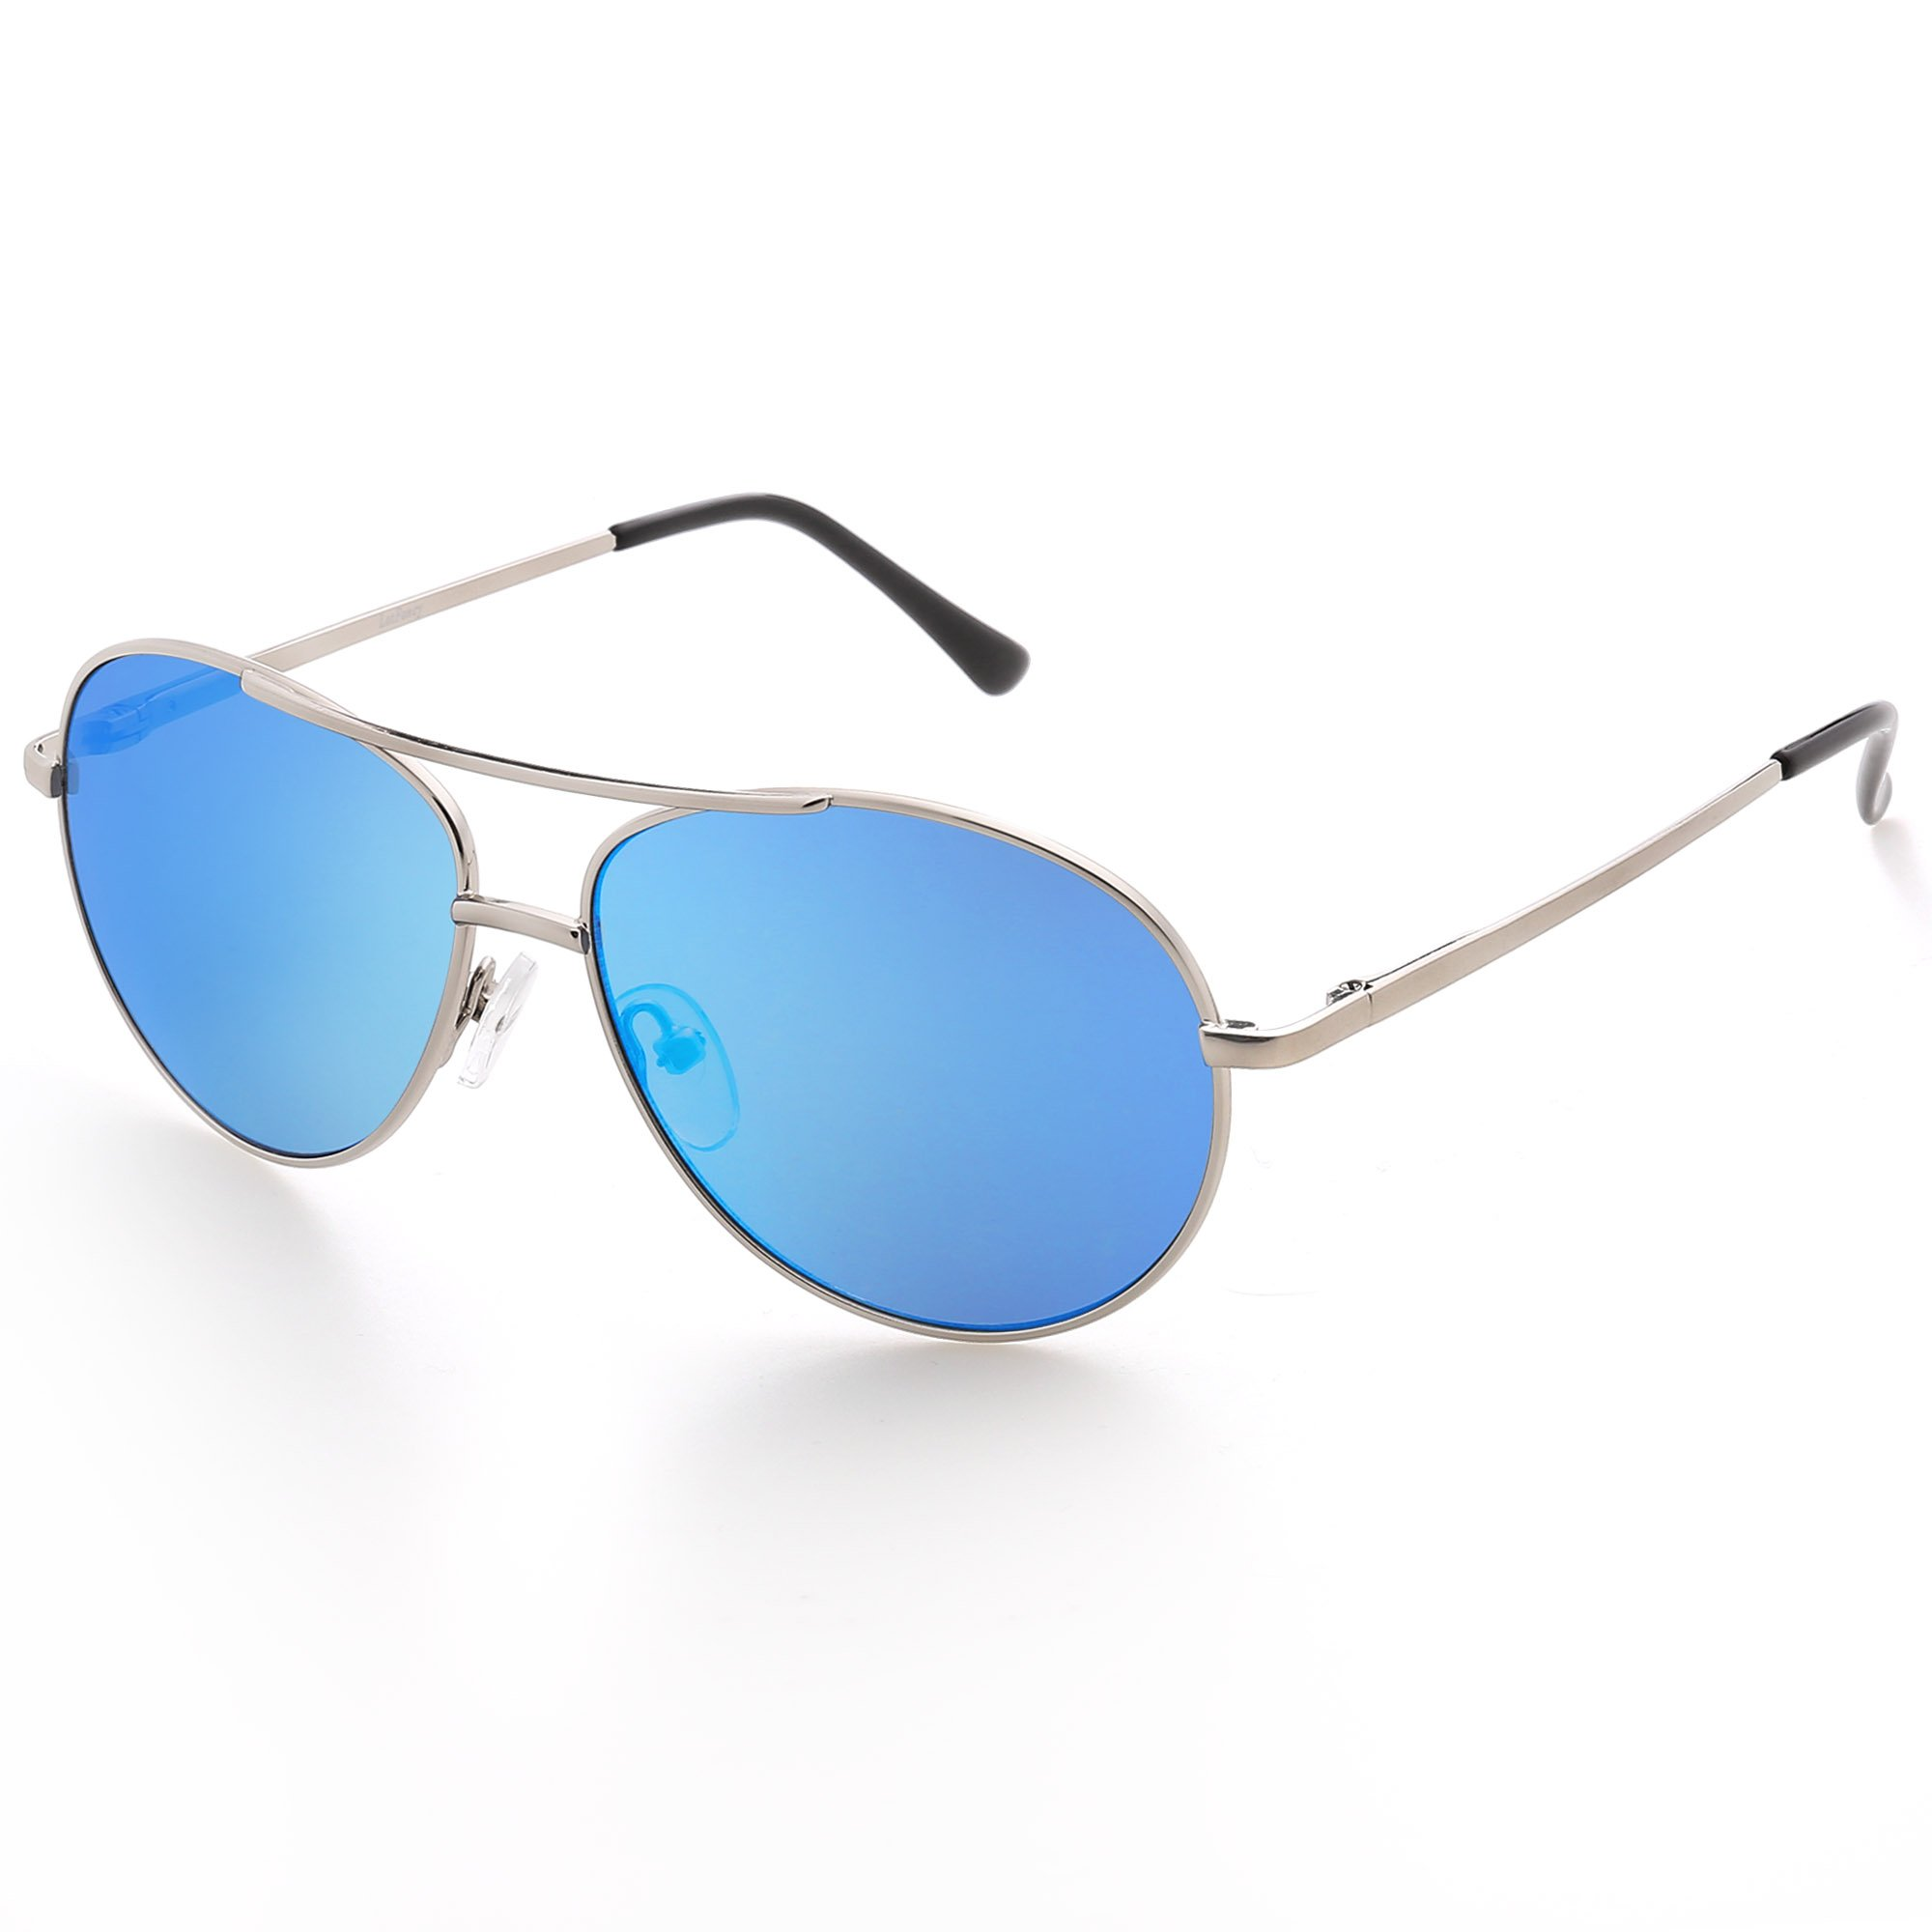 Aviator Sunglasses for Kids Girls Boys Children, Blue Mirrored Lens, Silver Metal Frame, UV Protection